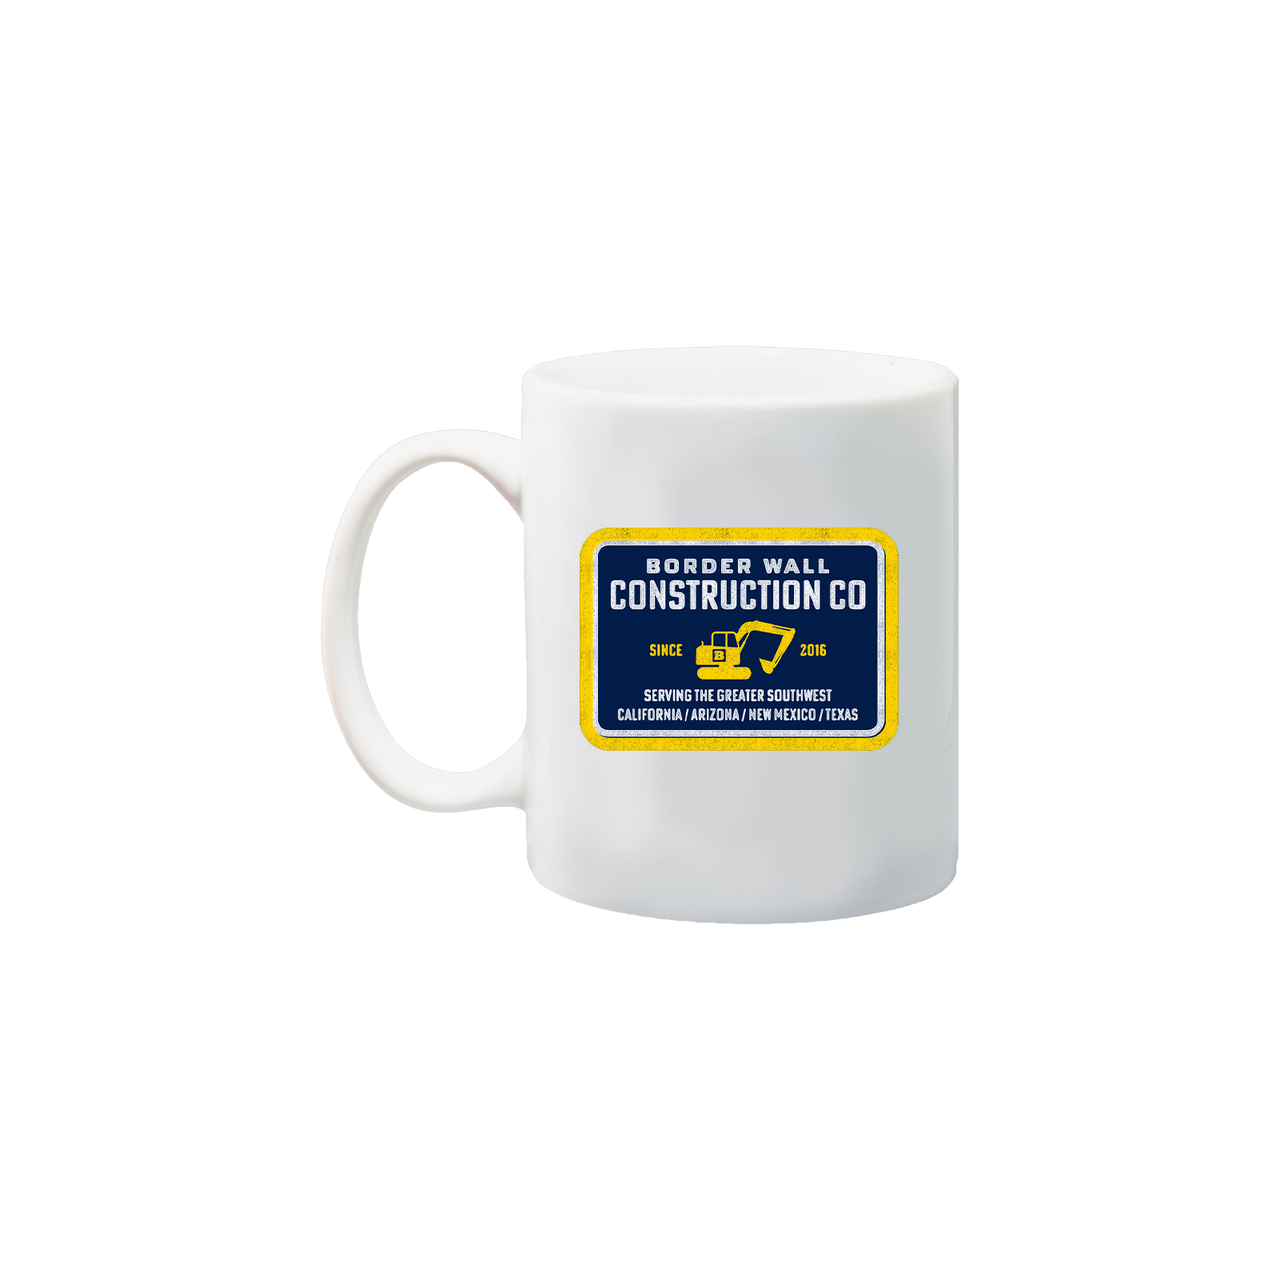 Border Wall Construction Company Mug